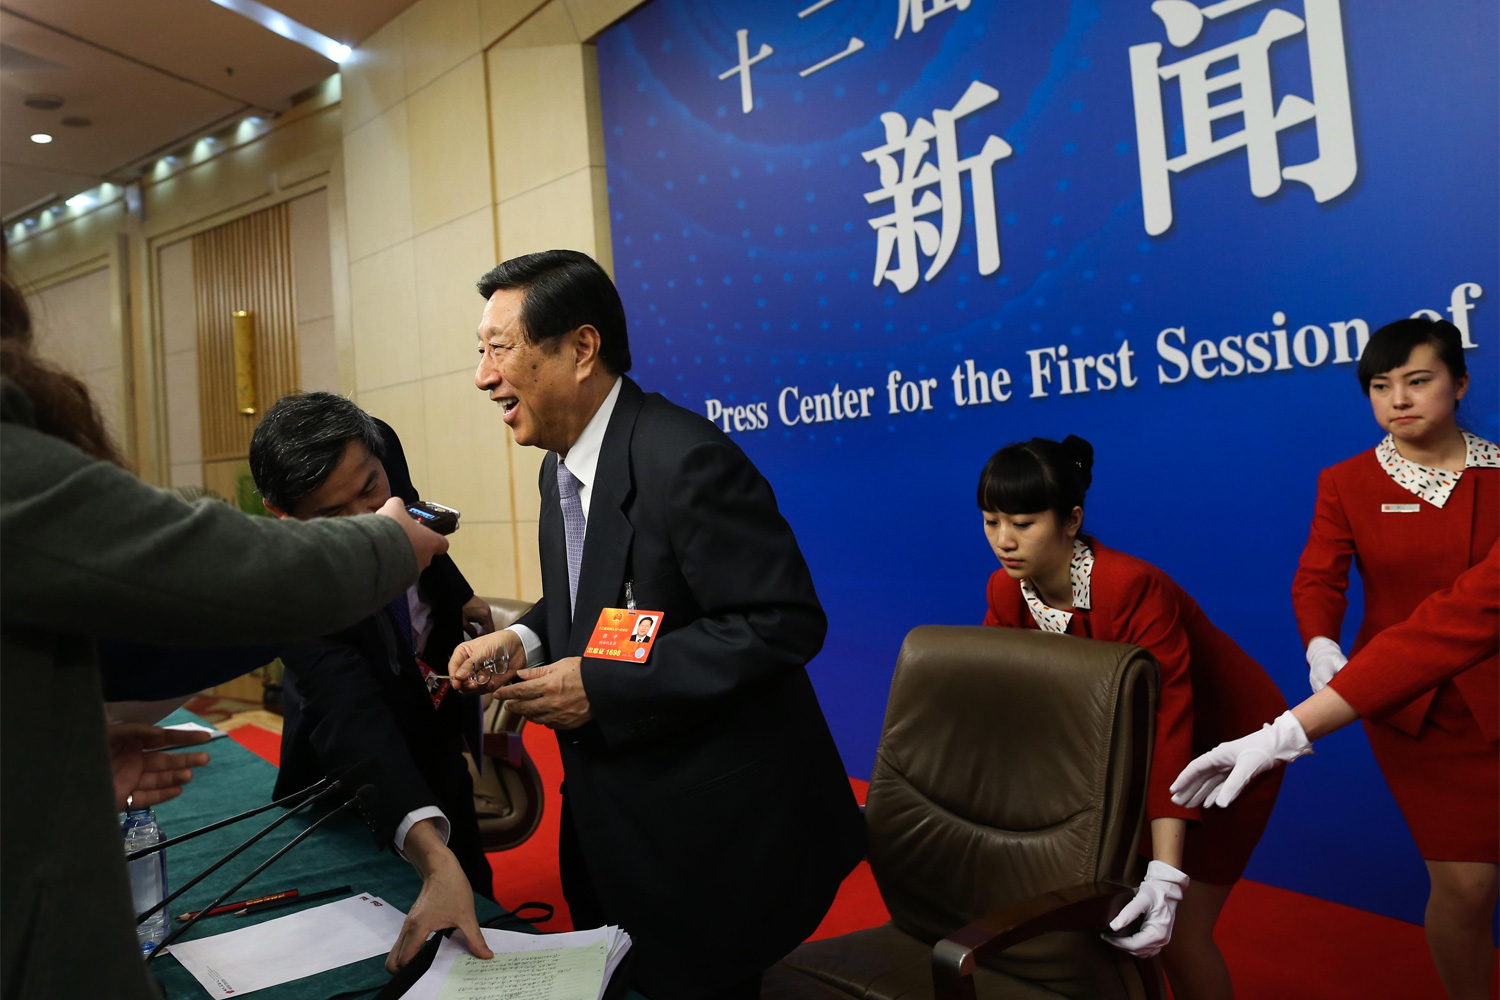 Female staff attend to Chongqing Mayor Huang Qifan during a press conference, March 4, 2011, at the Capital Hotel. Huang was close to the later disgraced Bo Xilai, who was Party Secretary of Chongqing at the time.